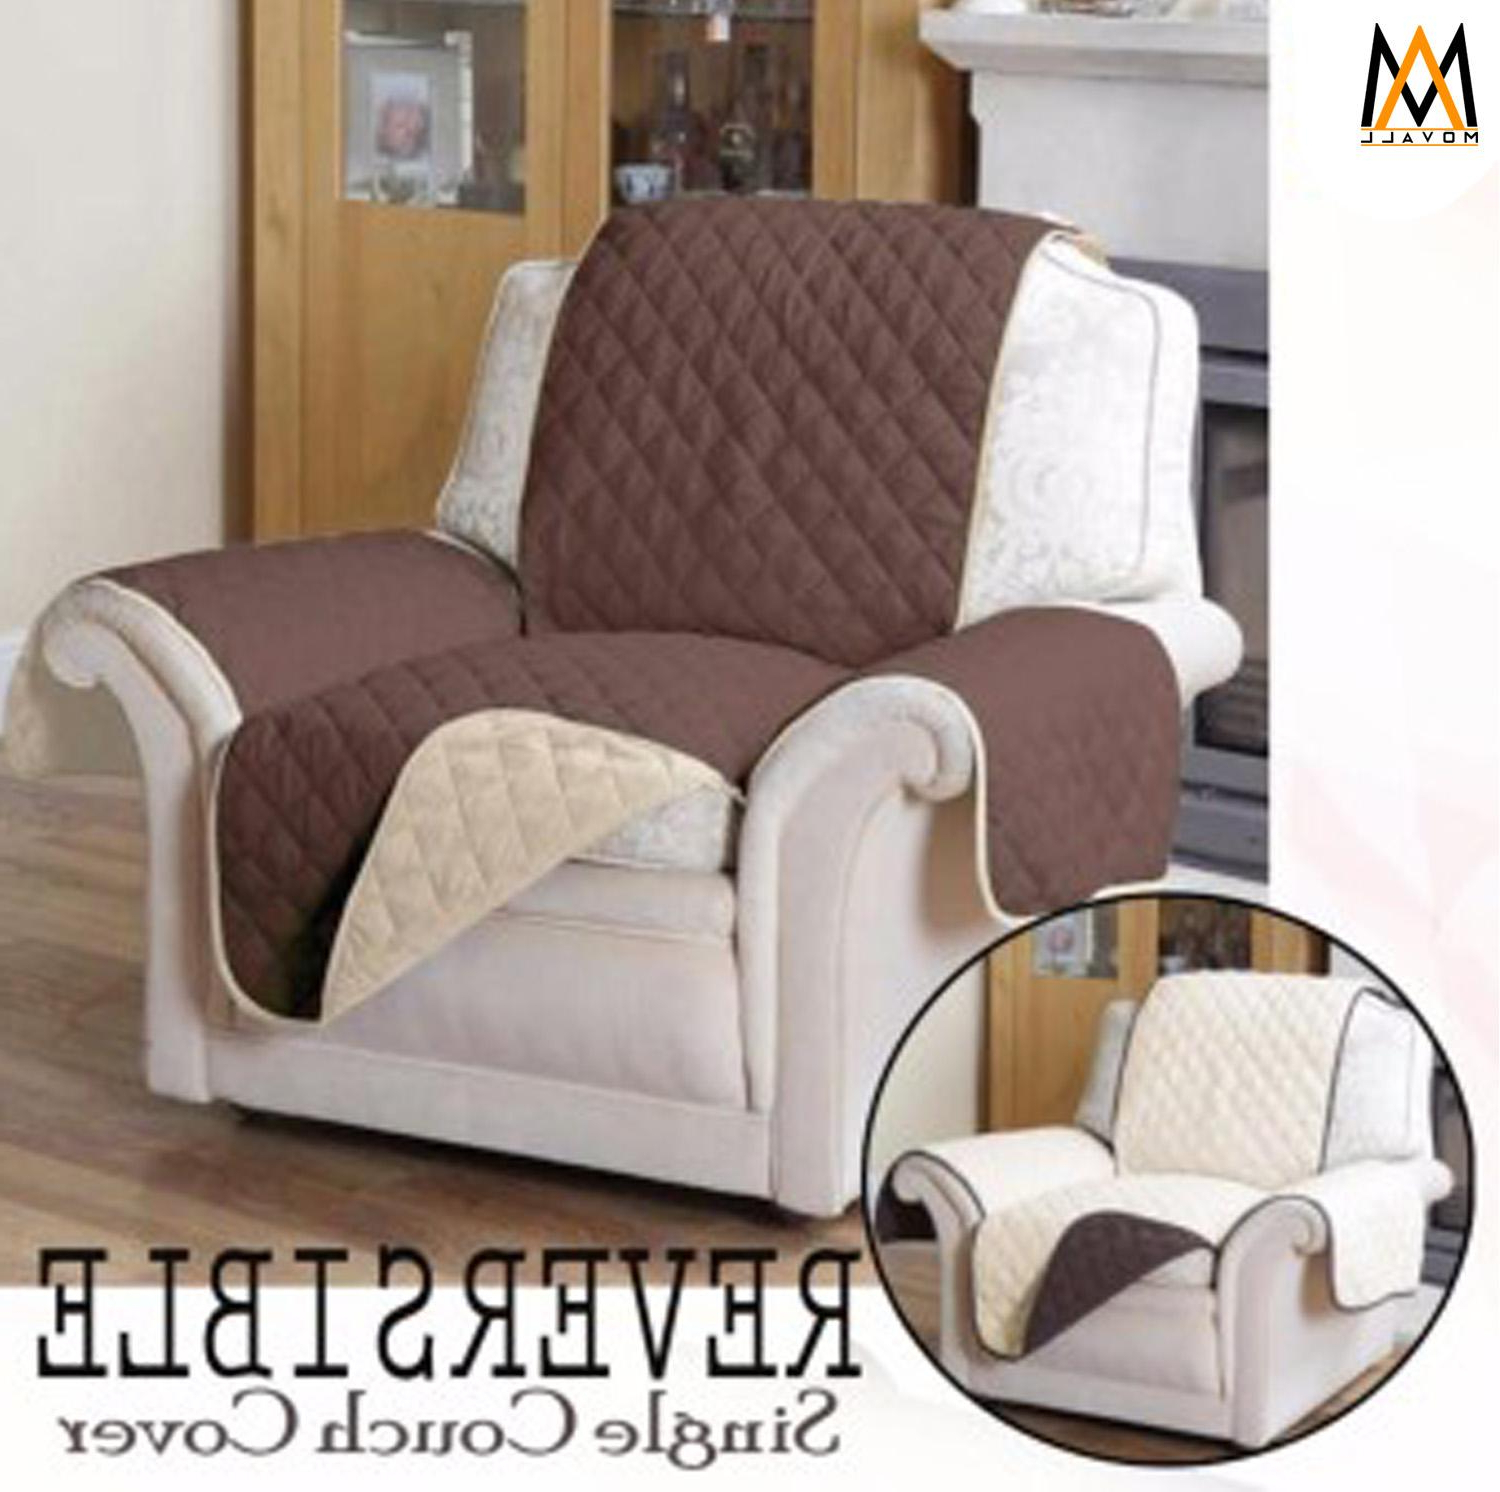 Popular Sofa And Chair Slipcovers With Regard To Slipcovers For Sale – Slipcover Prices, Brands & Review In (View 12 of 20)